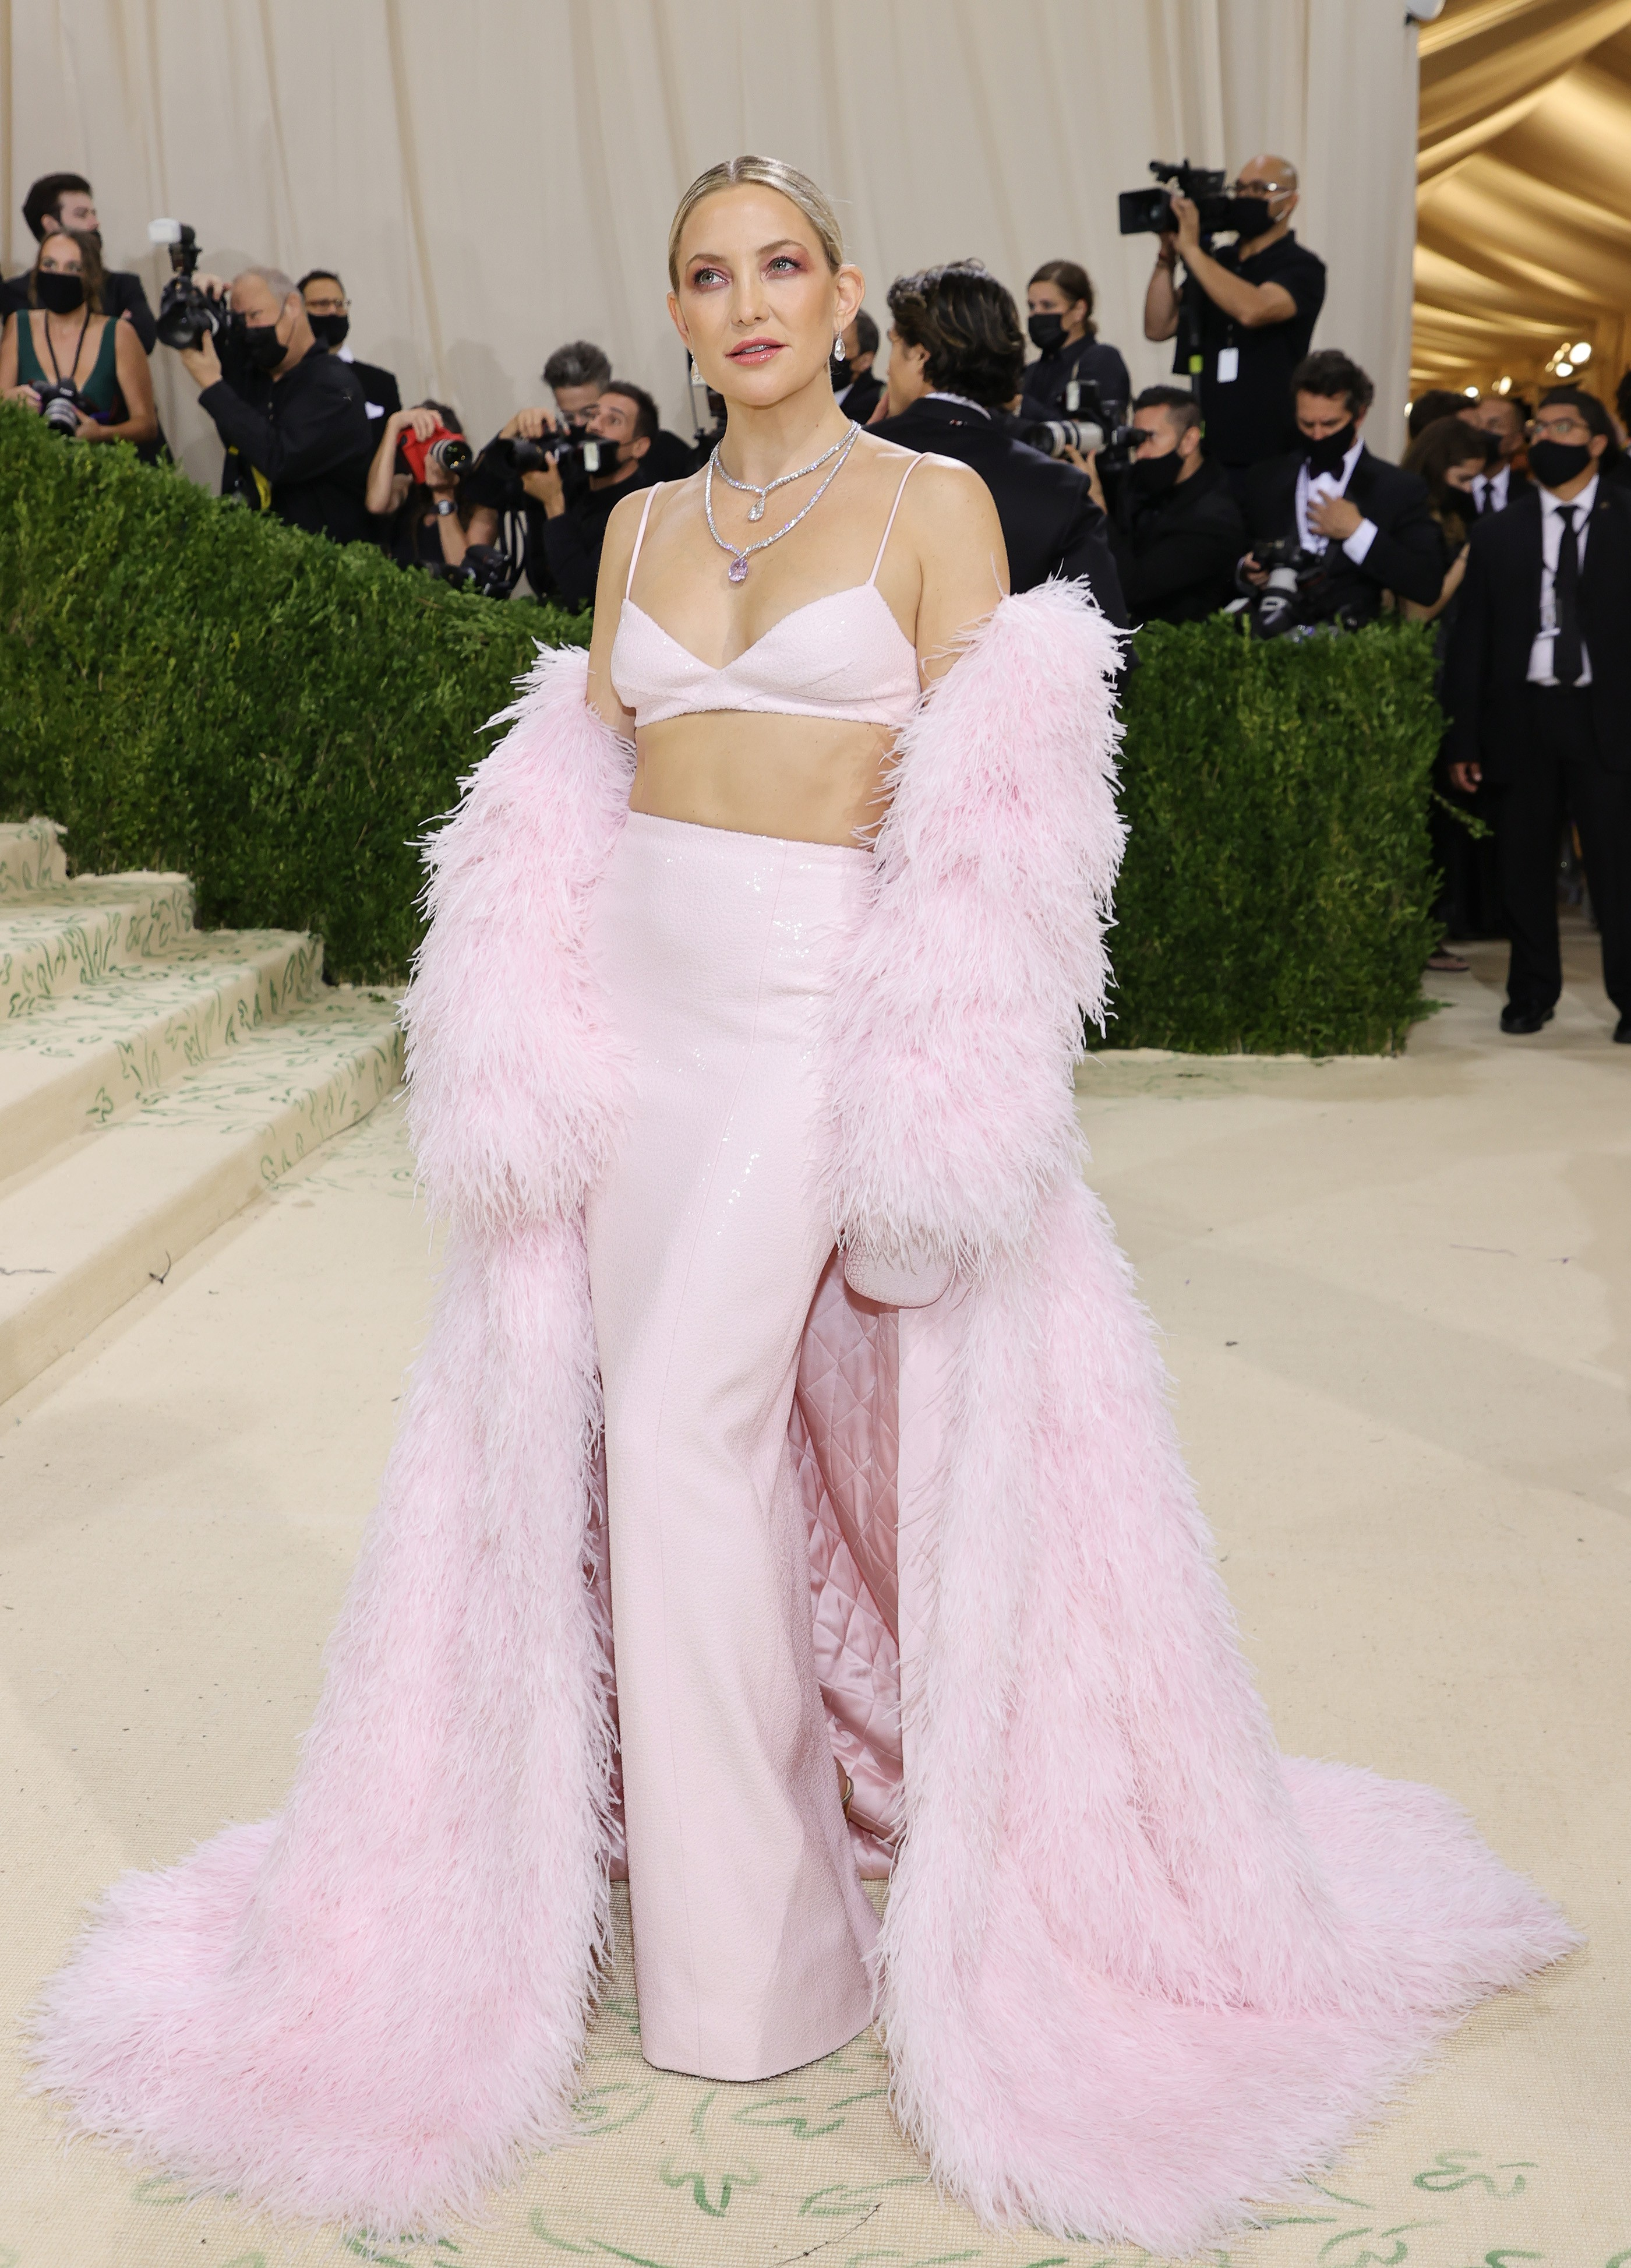 NEW YORK, NEW YORK - SEPTEMBER 13: Kate Hudson attends The 2021 Met Gala Celebrating In America: A Lexicon Of Fashion at Metropolitan Museum of Art on September 13, 2021 in New York City. (Photo by Mike Coppola/Getty Images) (Foto: Getty Images)